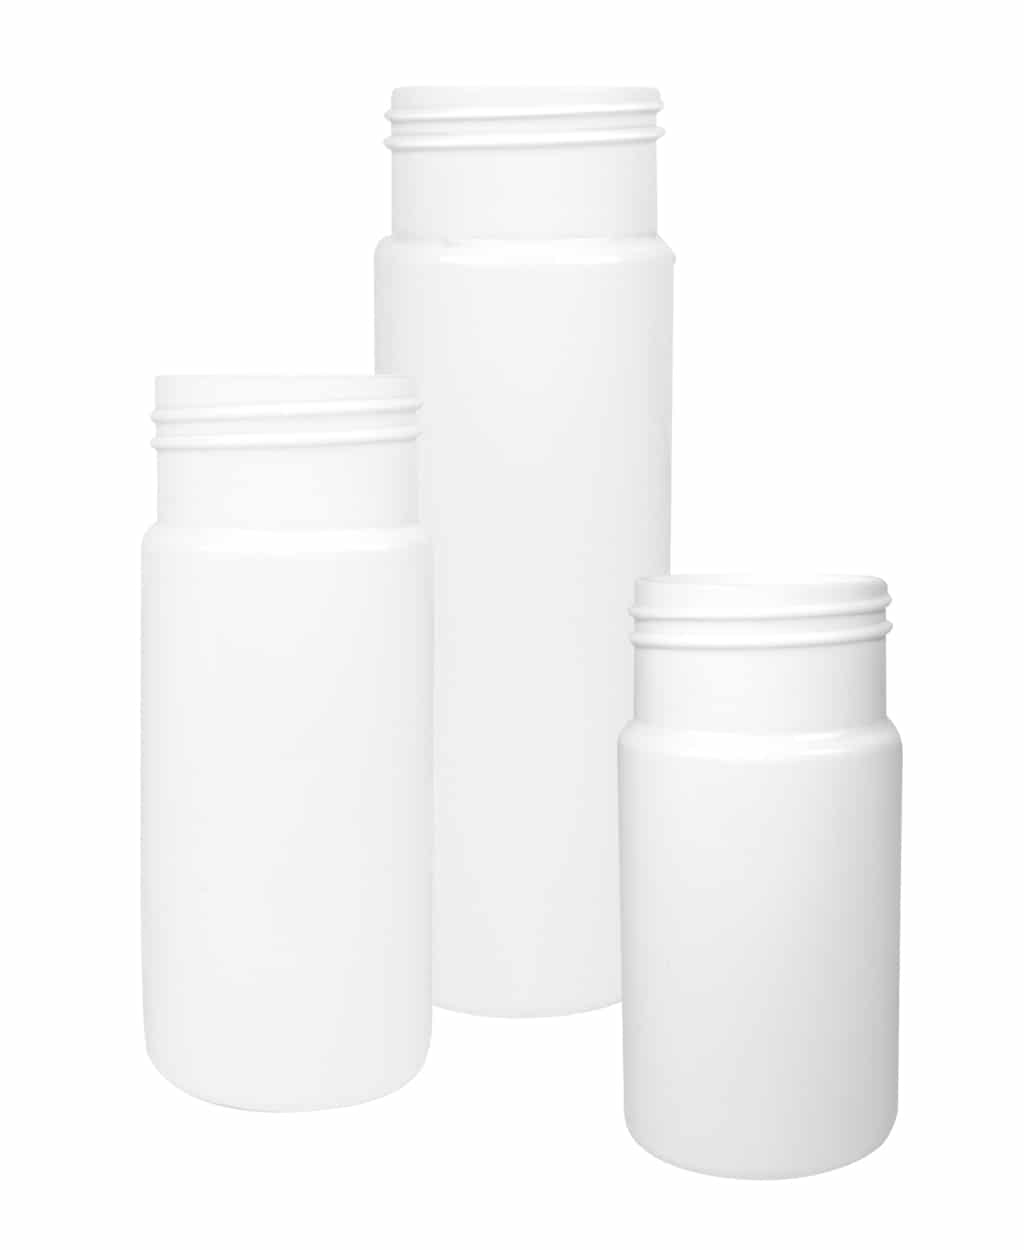 range-cylindrical-pill-container